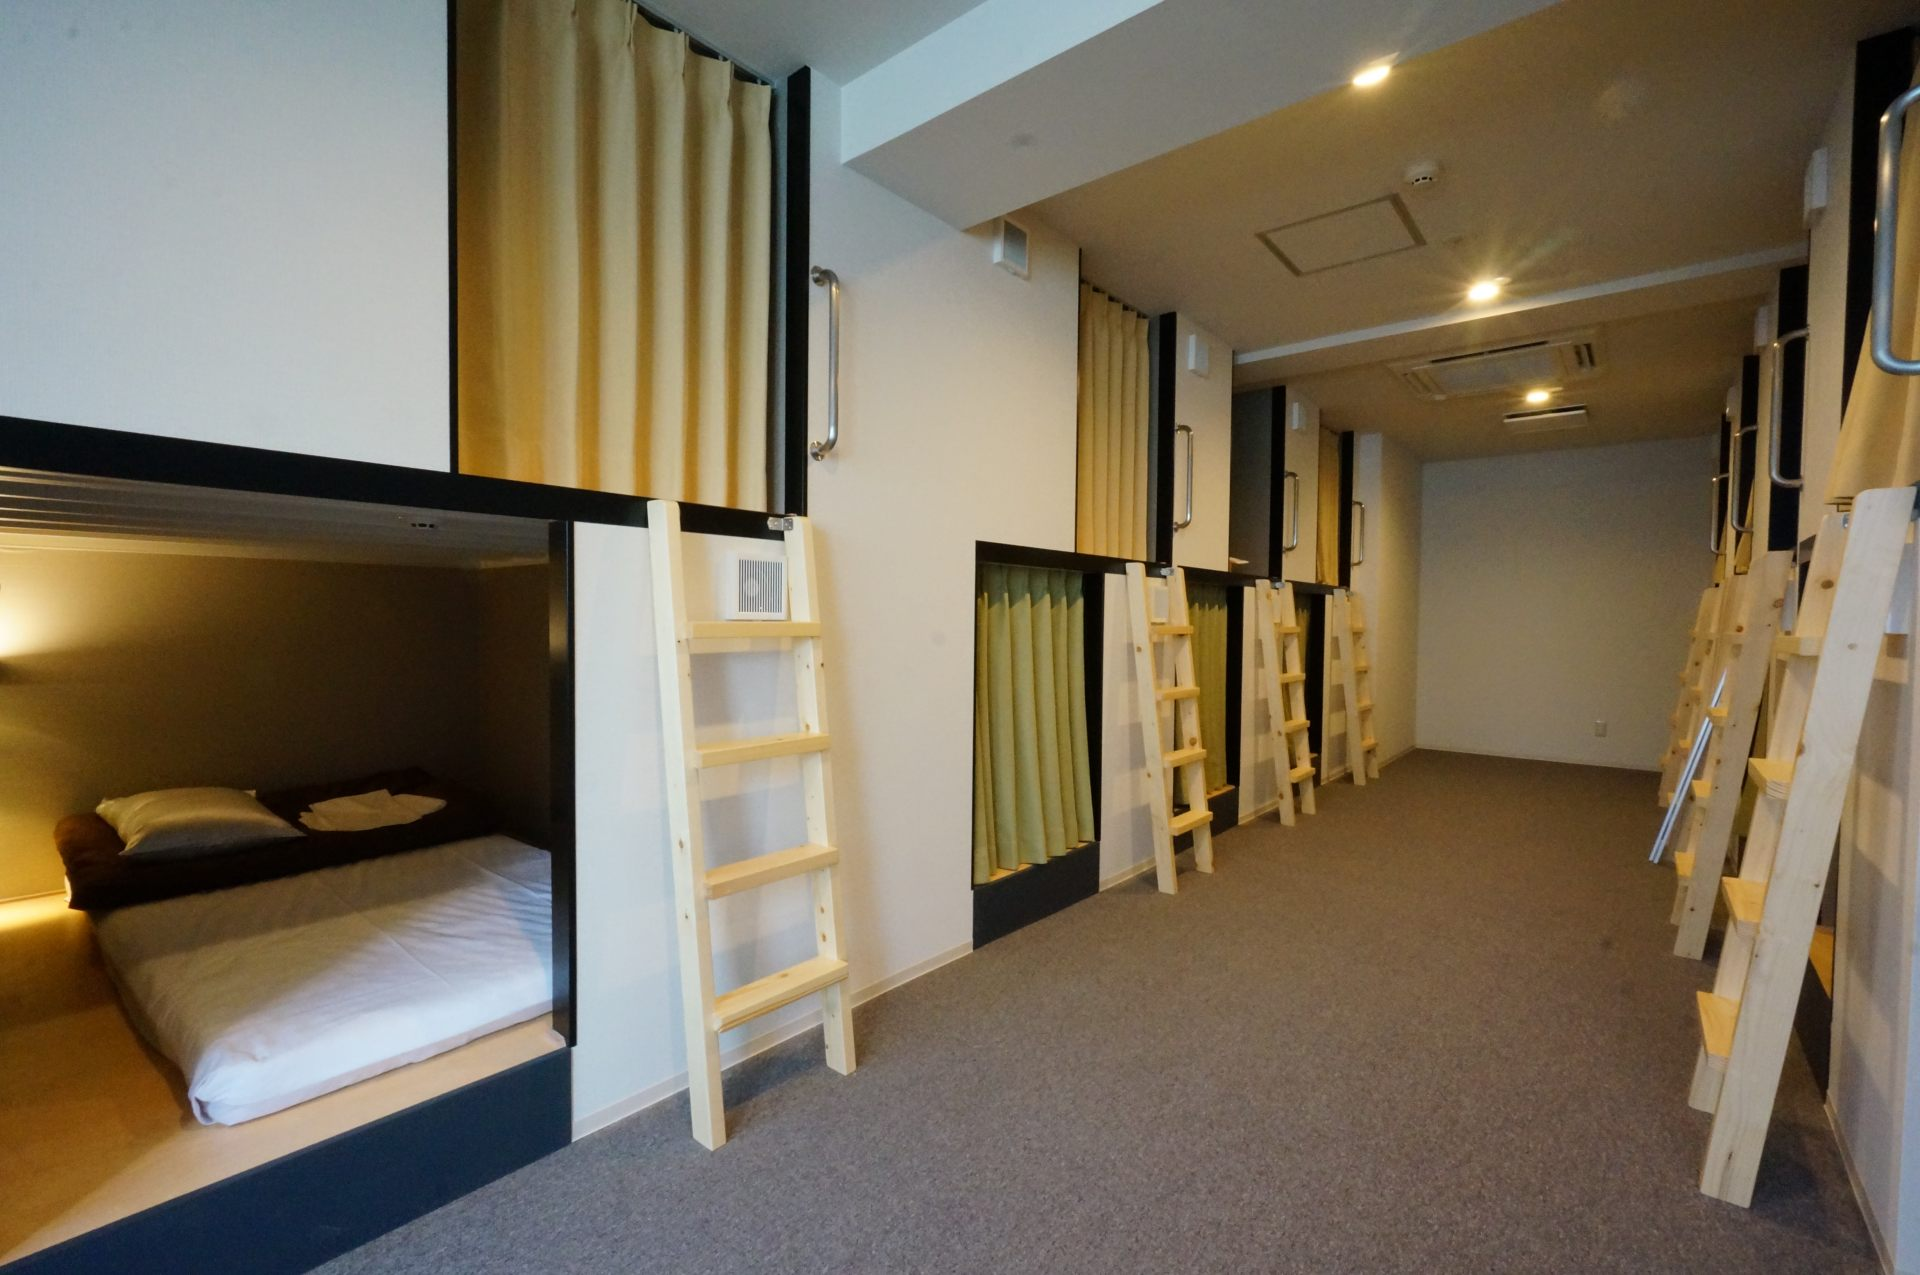 The wide-sized dormitory rooms are perfect for solo travel! There are various other room styles available that are well-suited for traveling with groups.